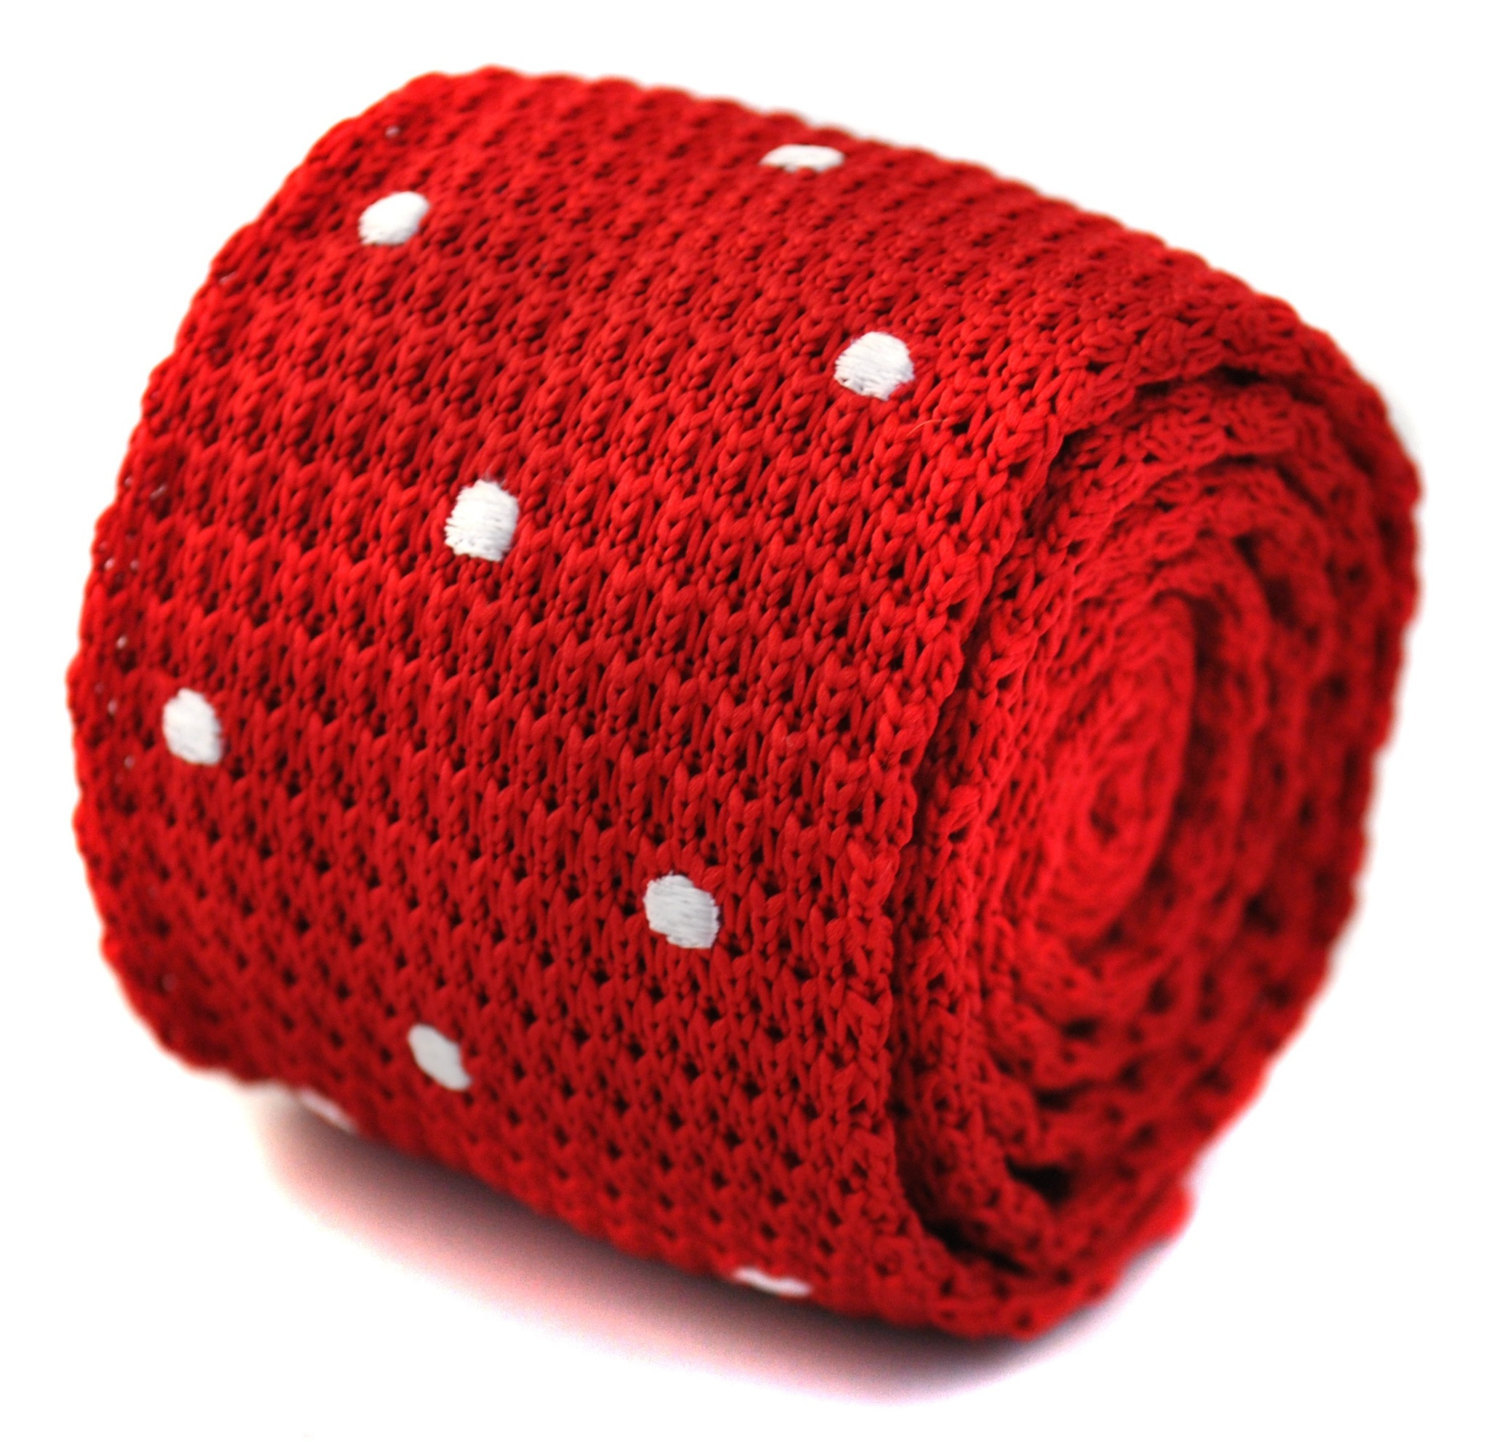 knitted red and white spotted skinny tie by Frederick Thomas FT1169